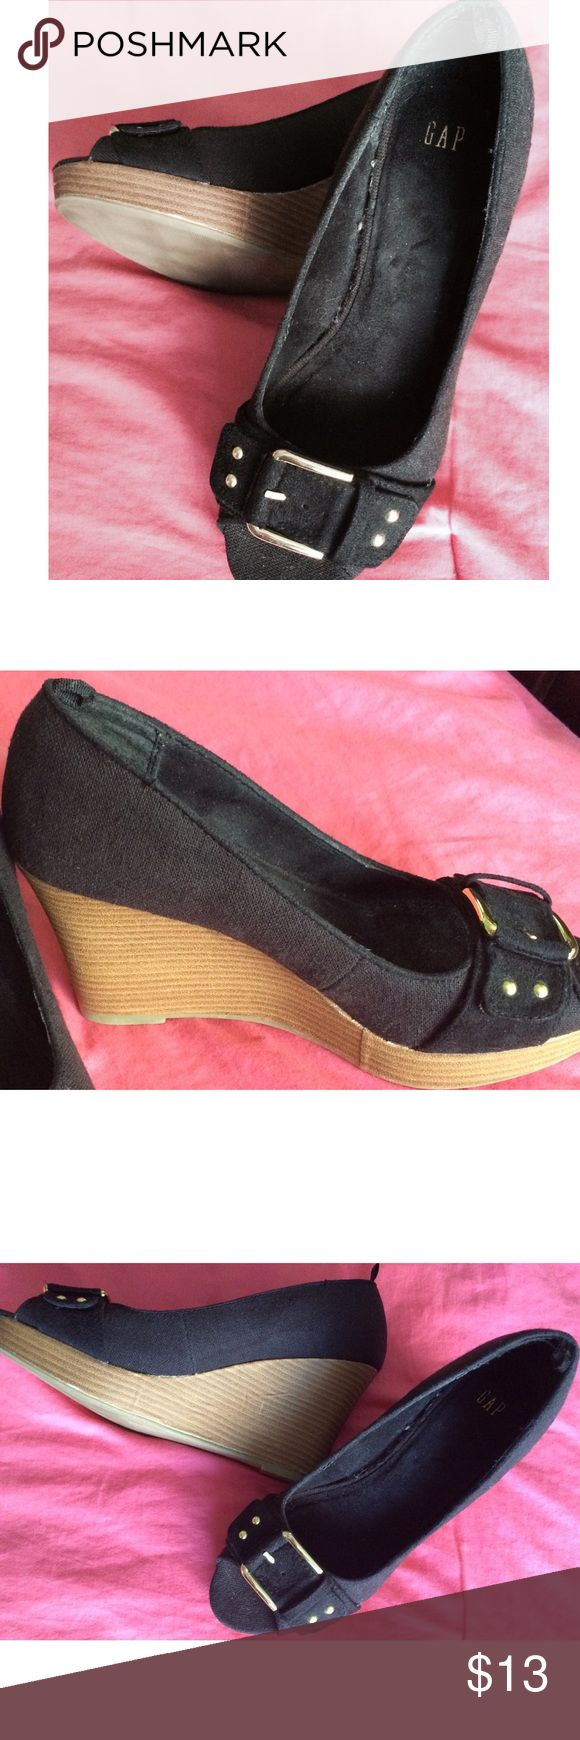 "Gap - Open Toe, Wedge Shoe. Open toe wood trim wedge shoes in black with a gold tone buckle by Gap.  These have been worn one time and are in like new condition. The wedge measures from top of wood trim to bottom; 4"". Gap Shoes Wedges"